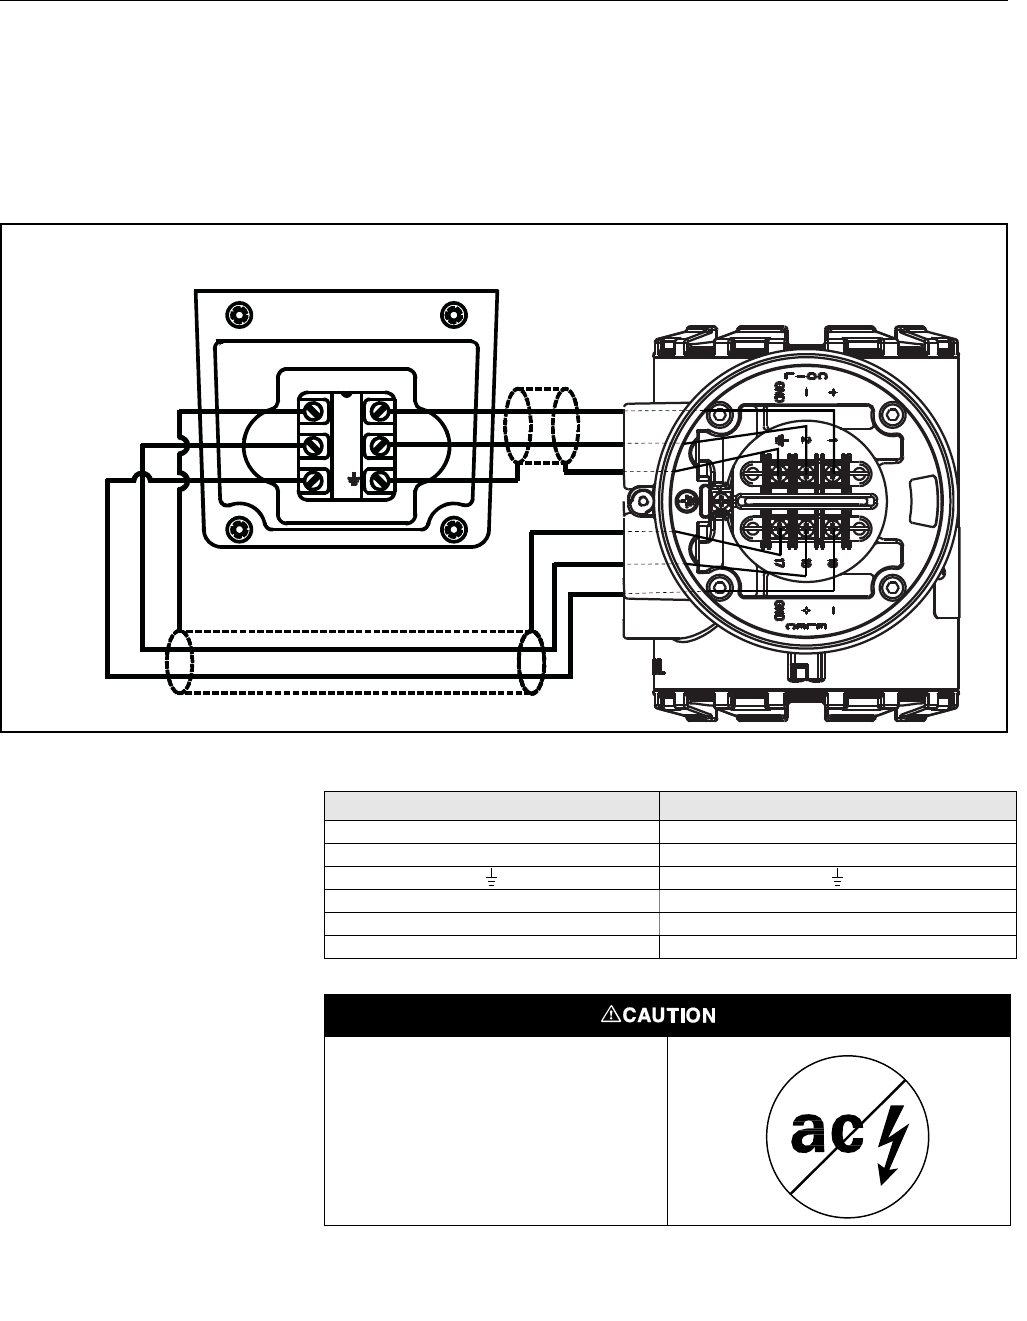 4cb8a751 c526 465f 9493 713bf7e156ff bg82 page 130 of emerson oxygen equipment rosemount 8732 user guide rosemount 8732e wiring diagram at readyjetset.co